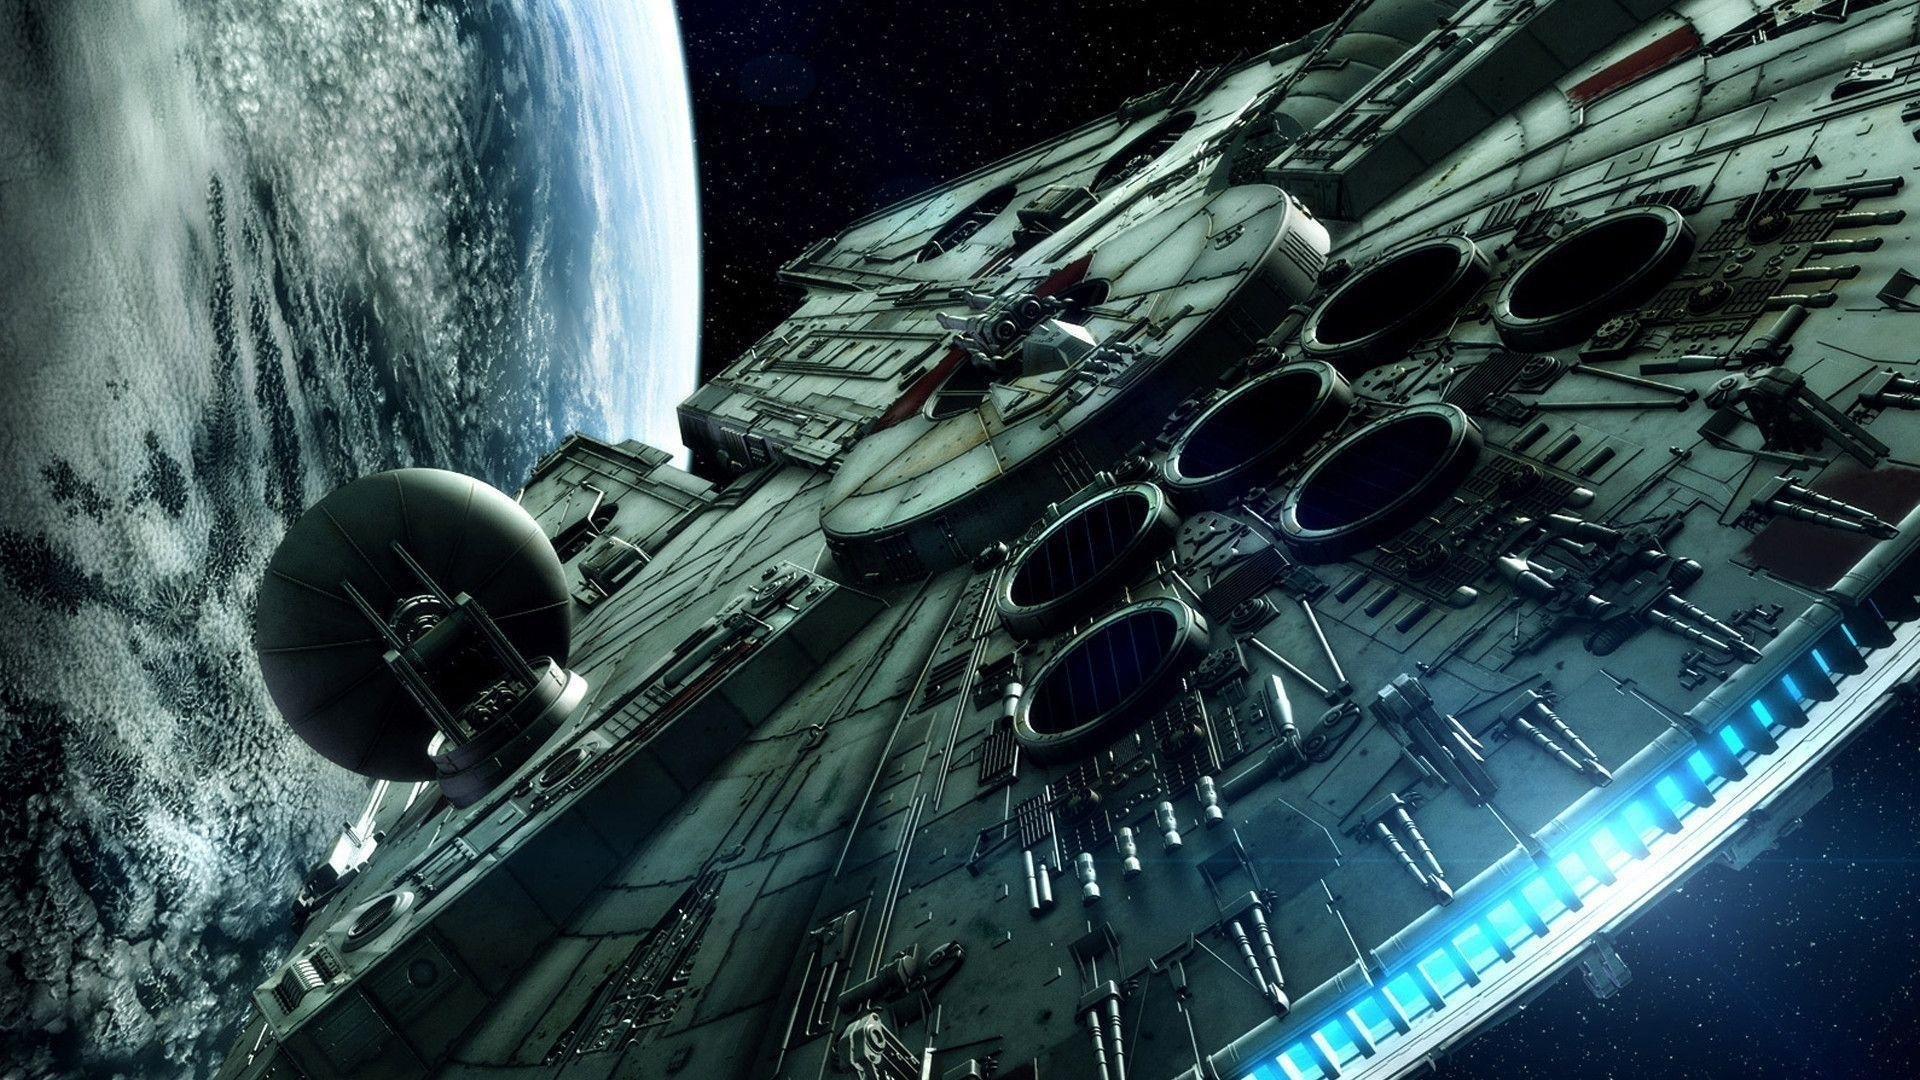 10 Latest 1920X1080 Hd Wallpaper Star Wars FULL HD 1080p For PC Desktop